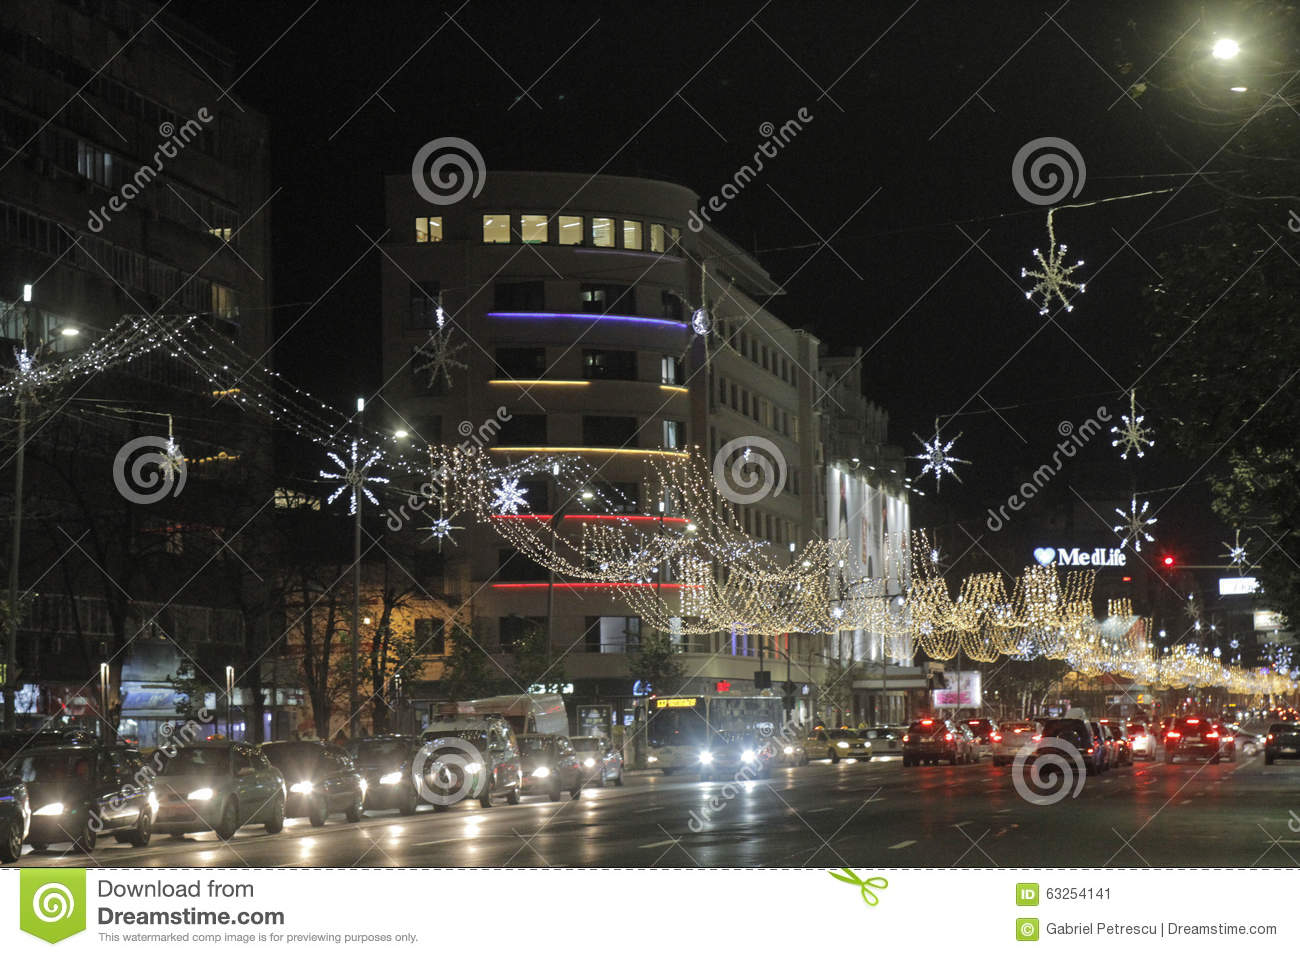 bucharest romania december 02 2015 nightscene in bucharest center when the christmas lights and decorations are on - When Is Christmas In 2015